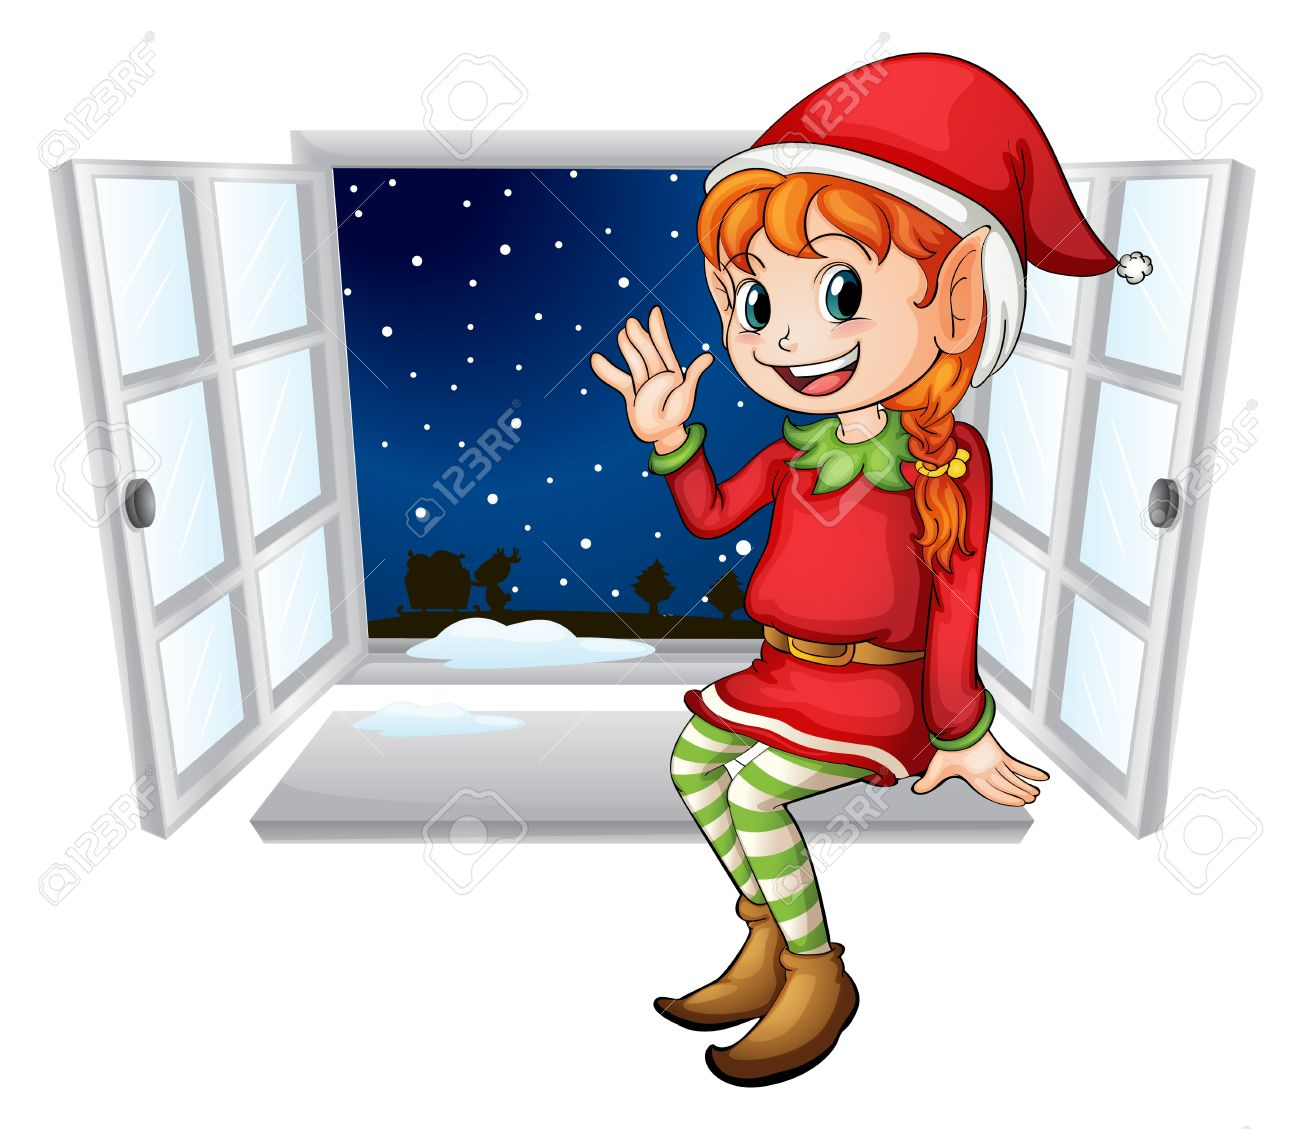 illustration of an elf in a window royalty free cliparts vectors